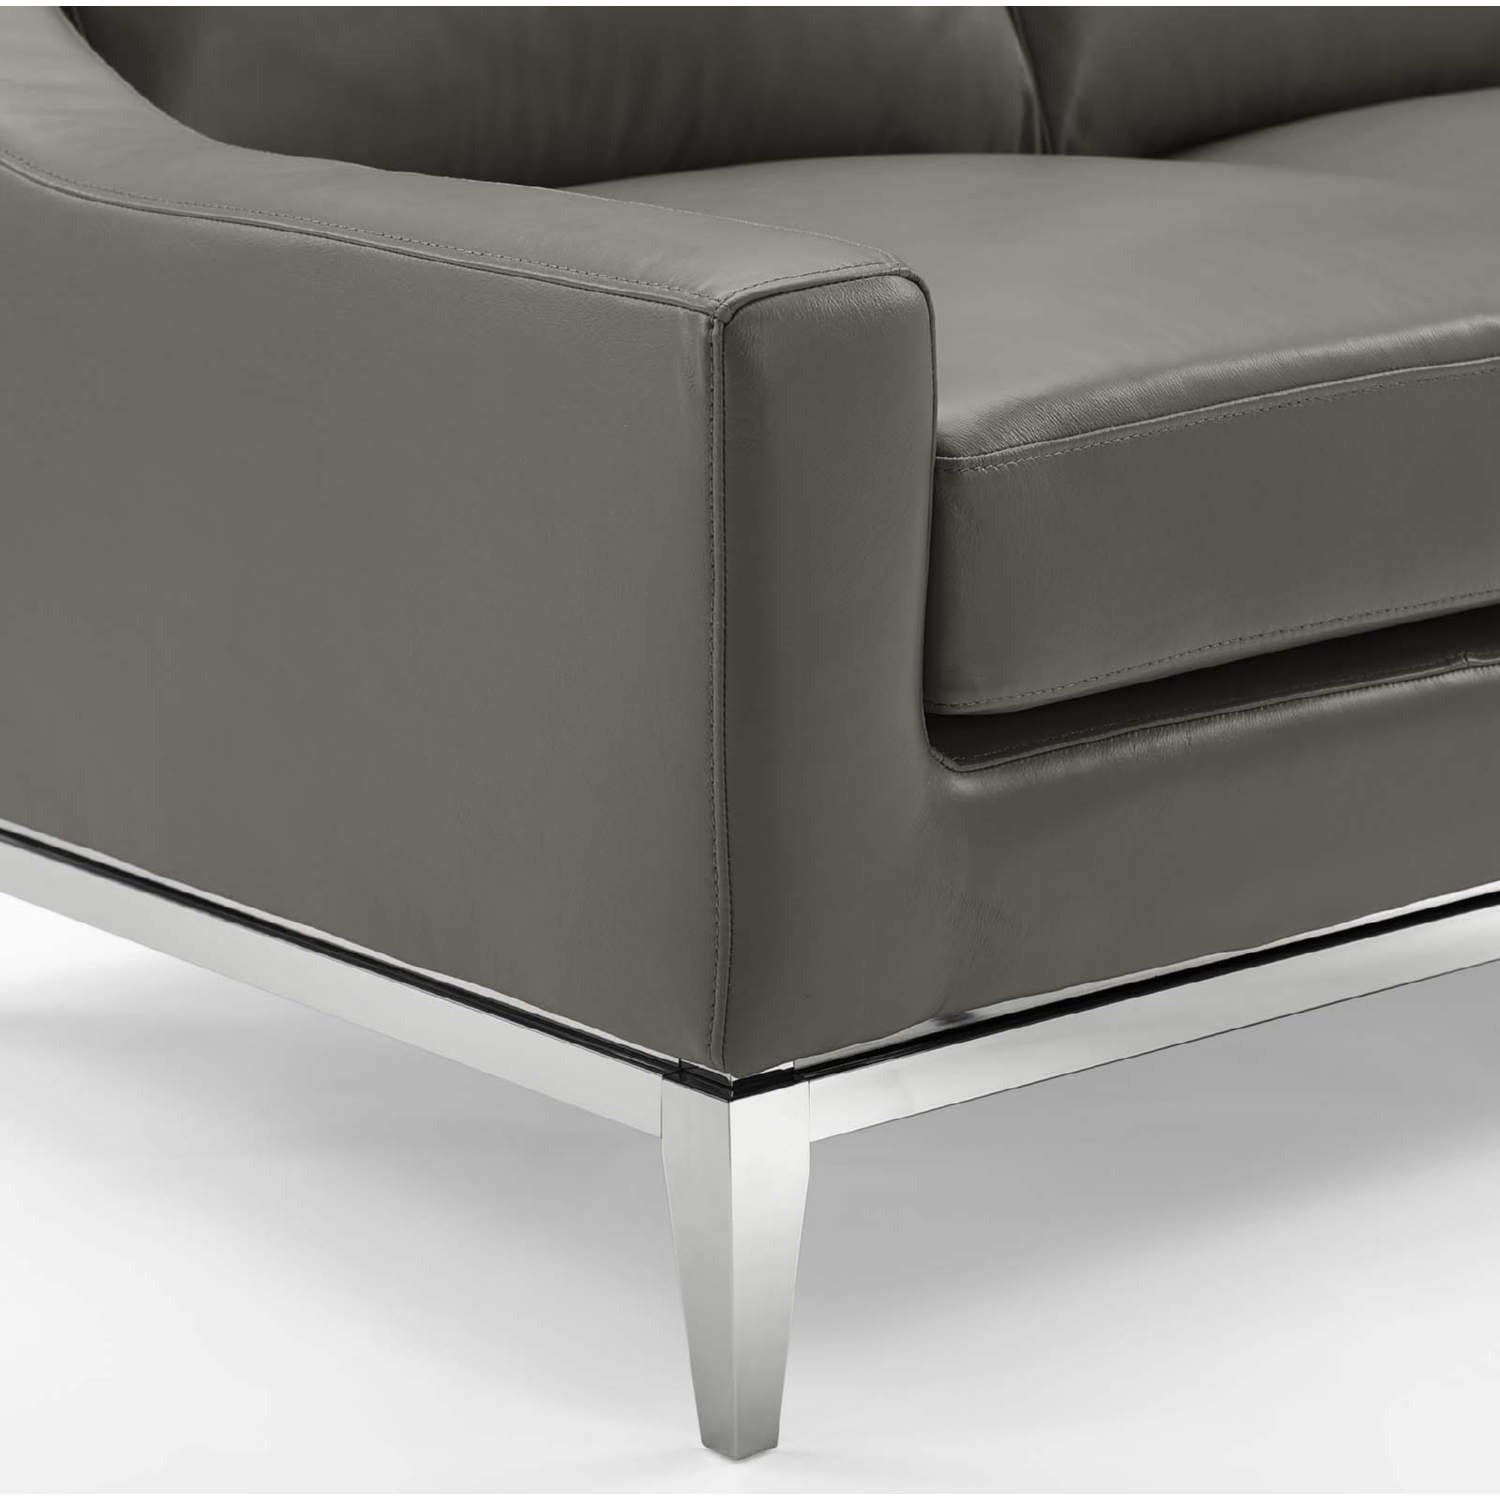 Sofa In Gray Leather Upholstery W/ Steel Base - image-4